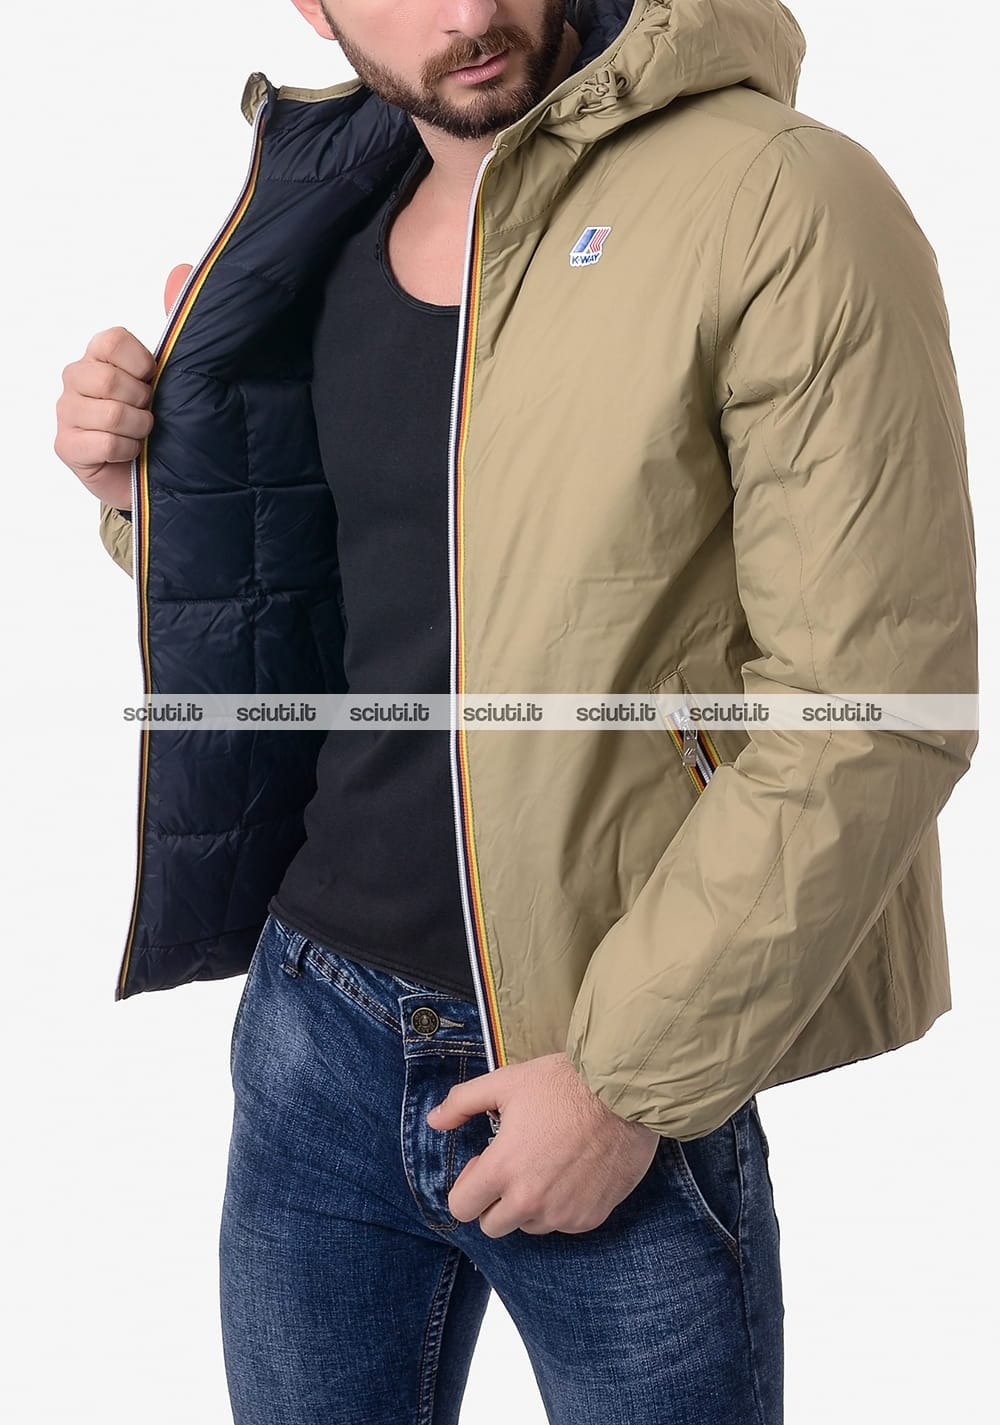 102a109329e5ff Giubbotto Kway uomo reversibile Jacques Thermo Plus Double beige blu scuro